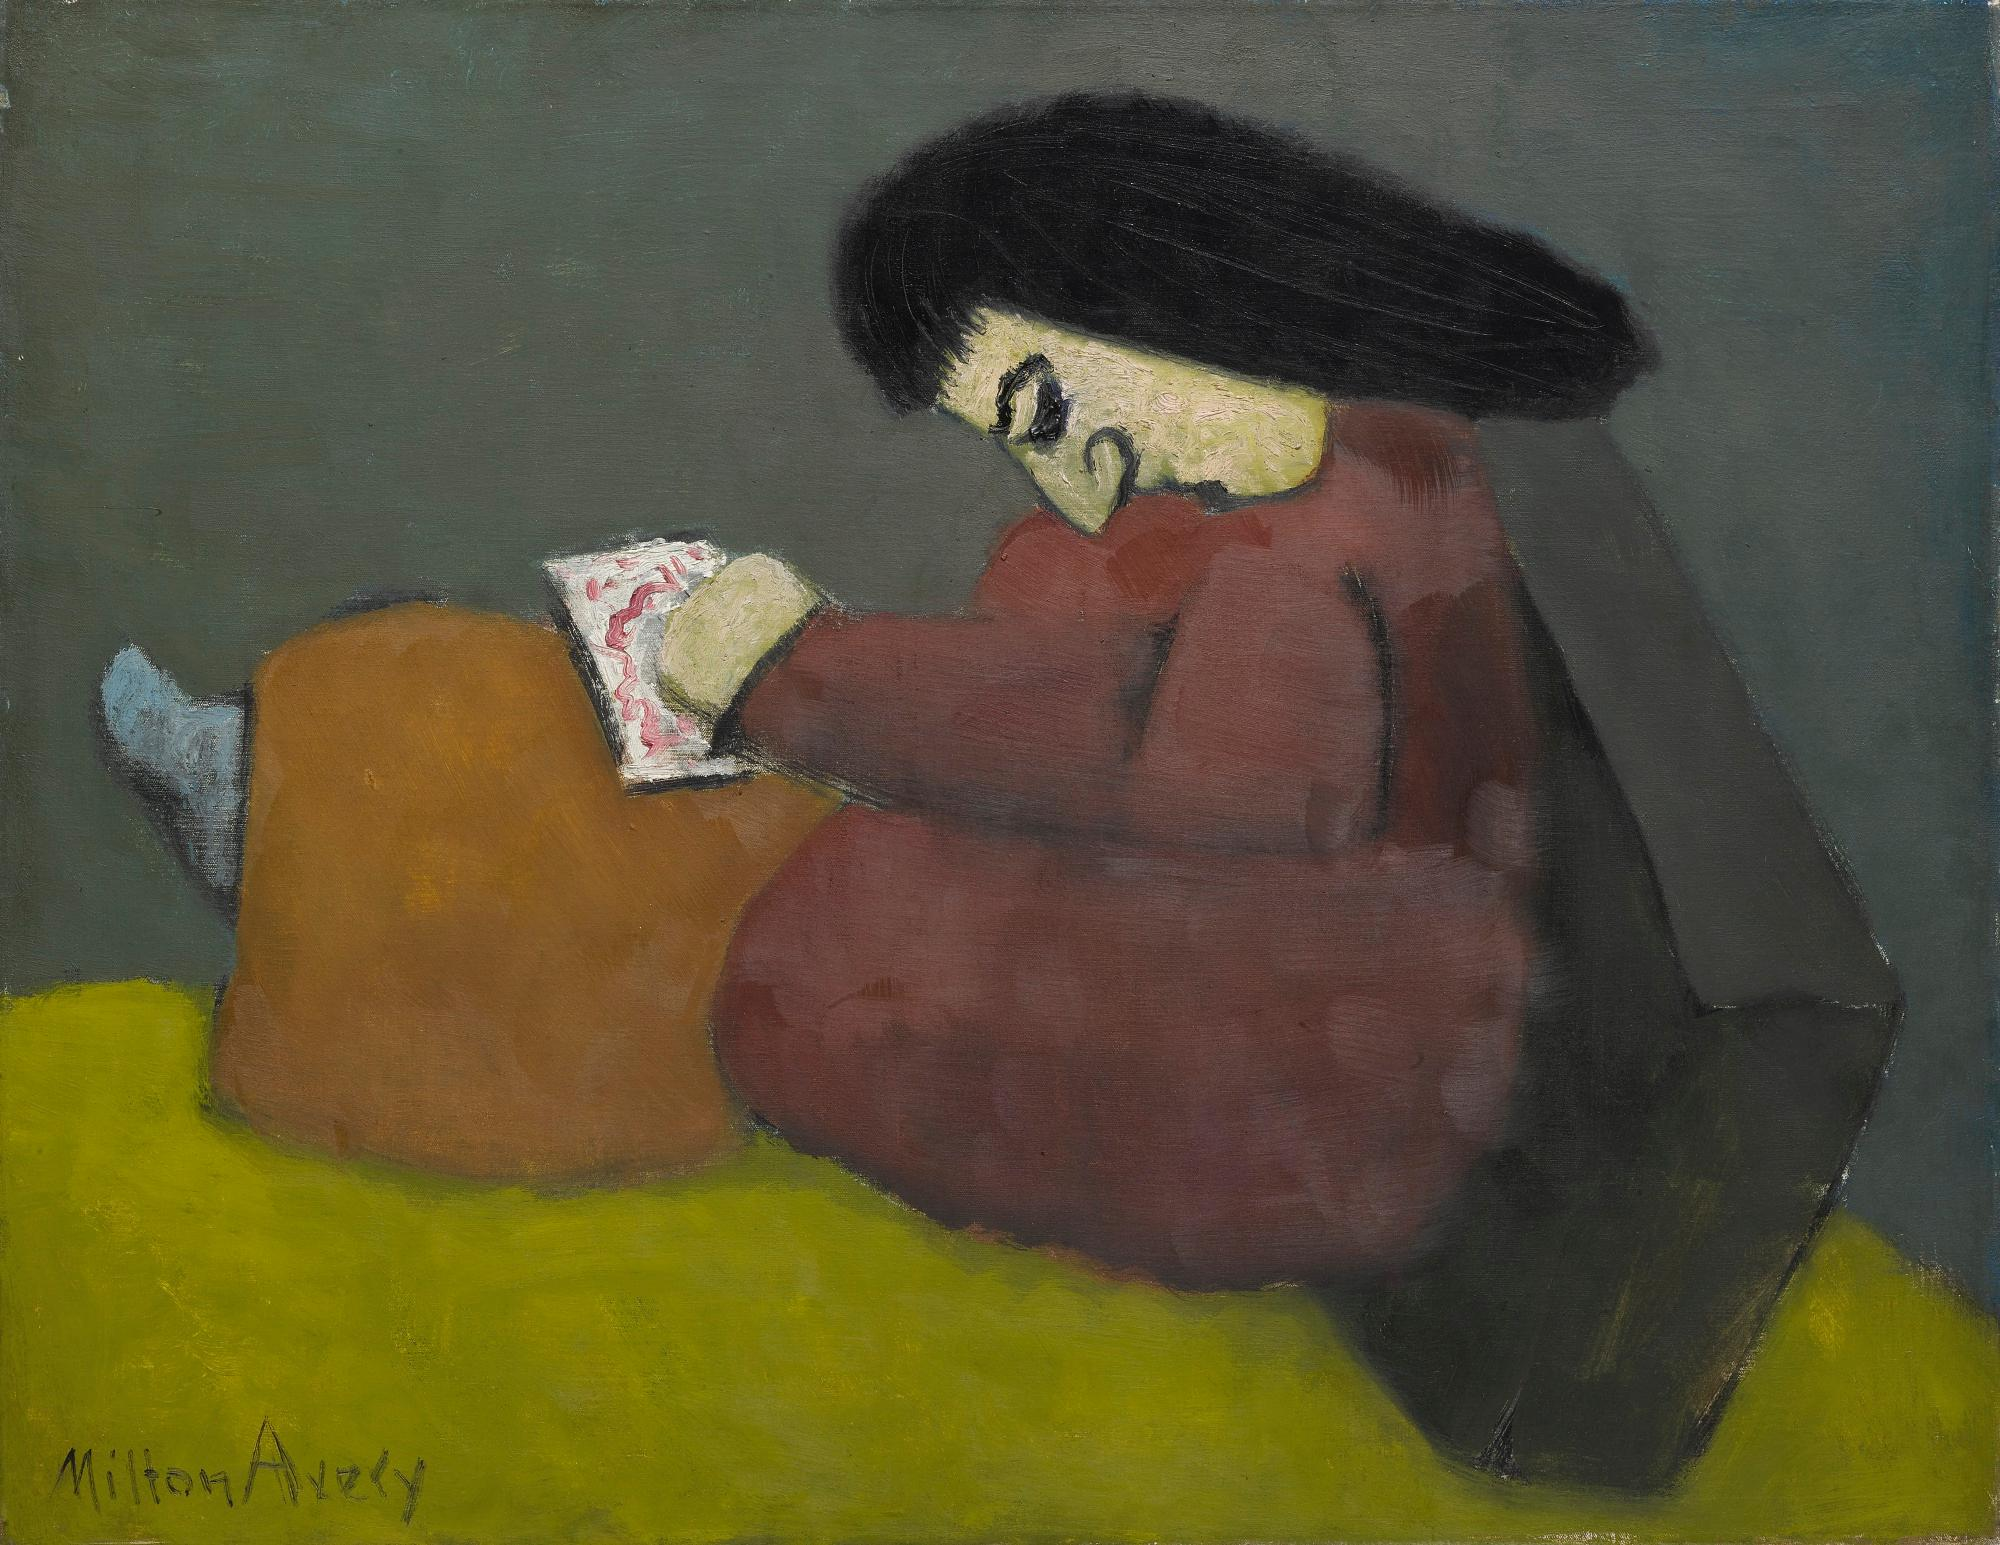 Young Artist by Milton Avery